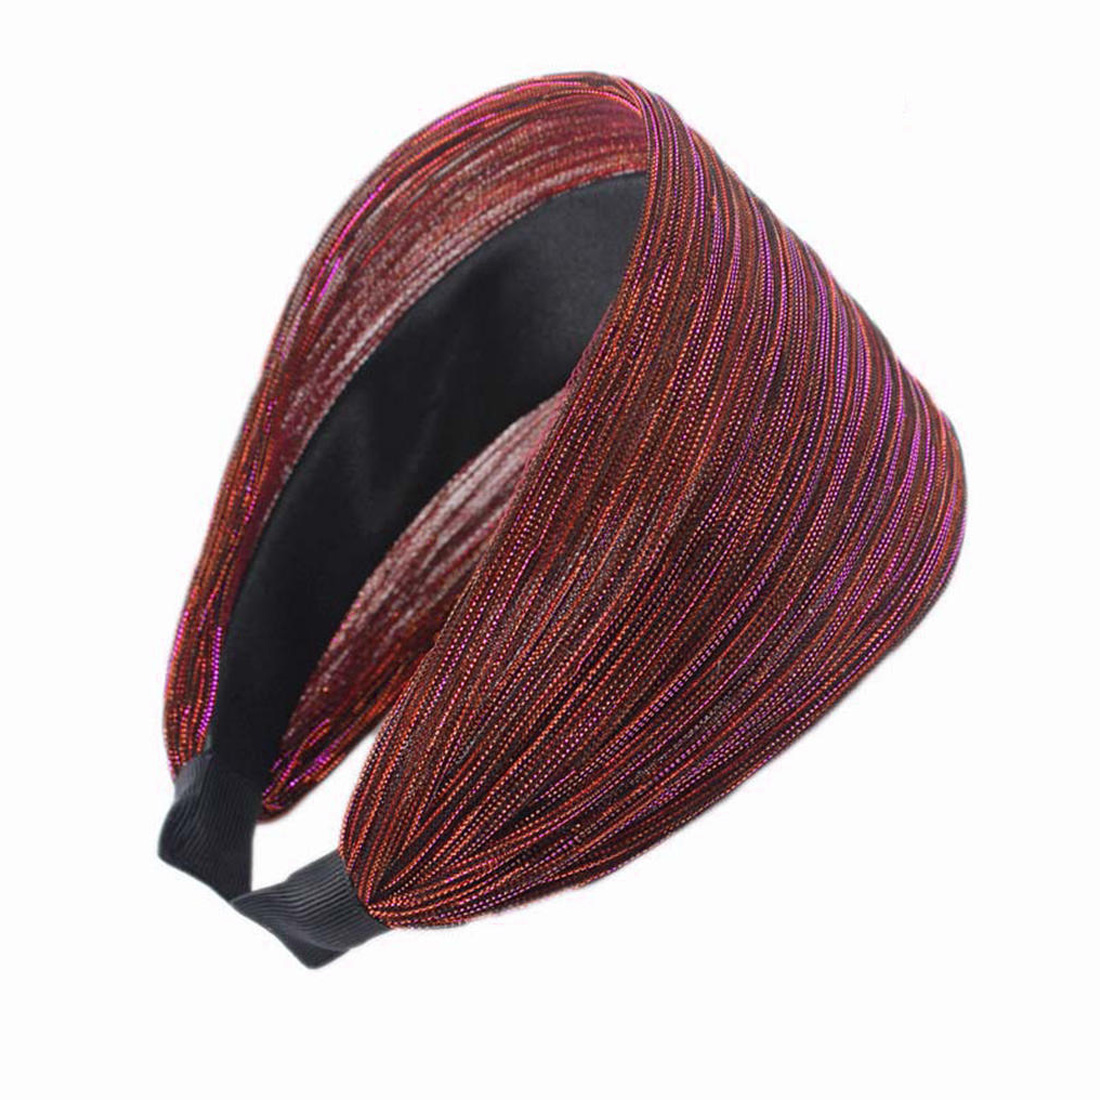 New Hairbands Boutique Hair Hoops For Tiara Hair Accessories Women Lady Girl Fabric Wide Headband Hair Band Headwear in Women 39 s Hair Accessories from Apparel Accessories